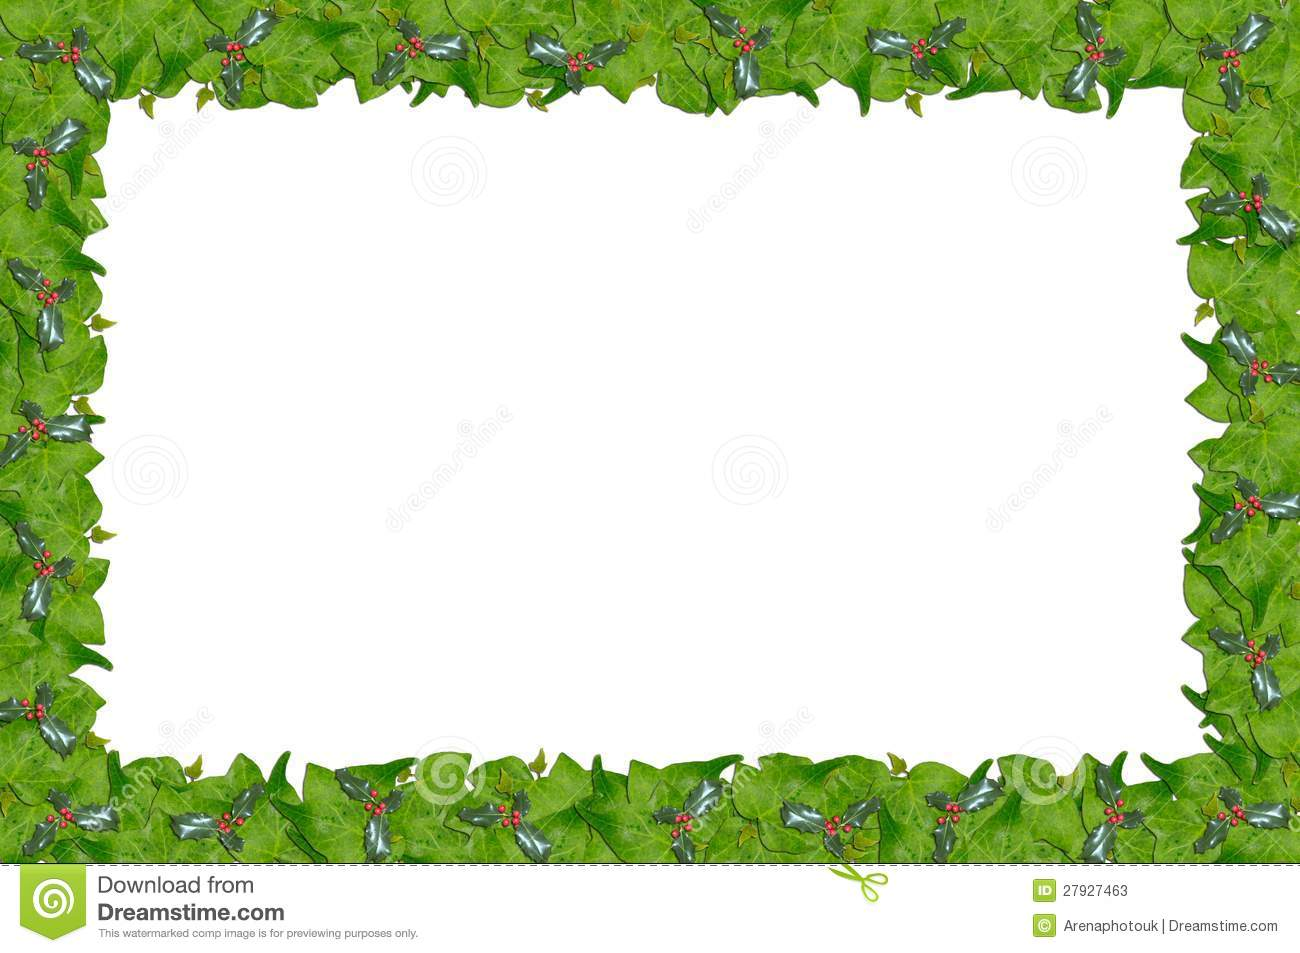 Holly and ivy page border stock photos image 27927463 for Holly and ivy border